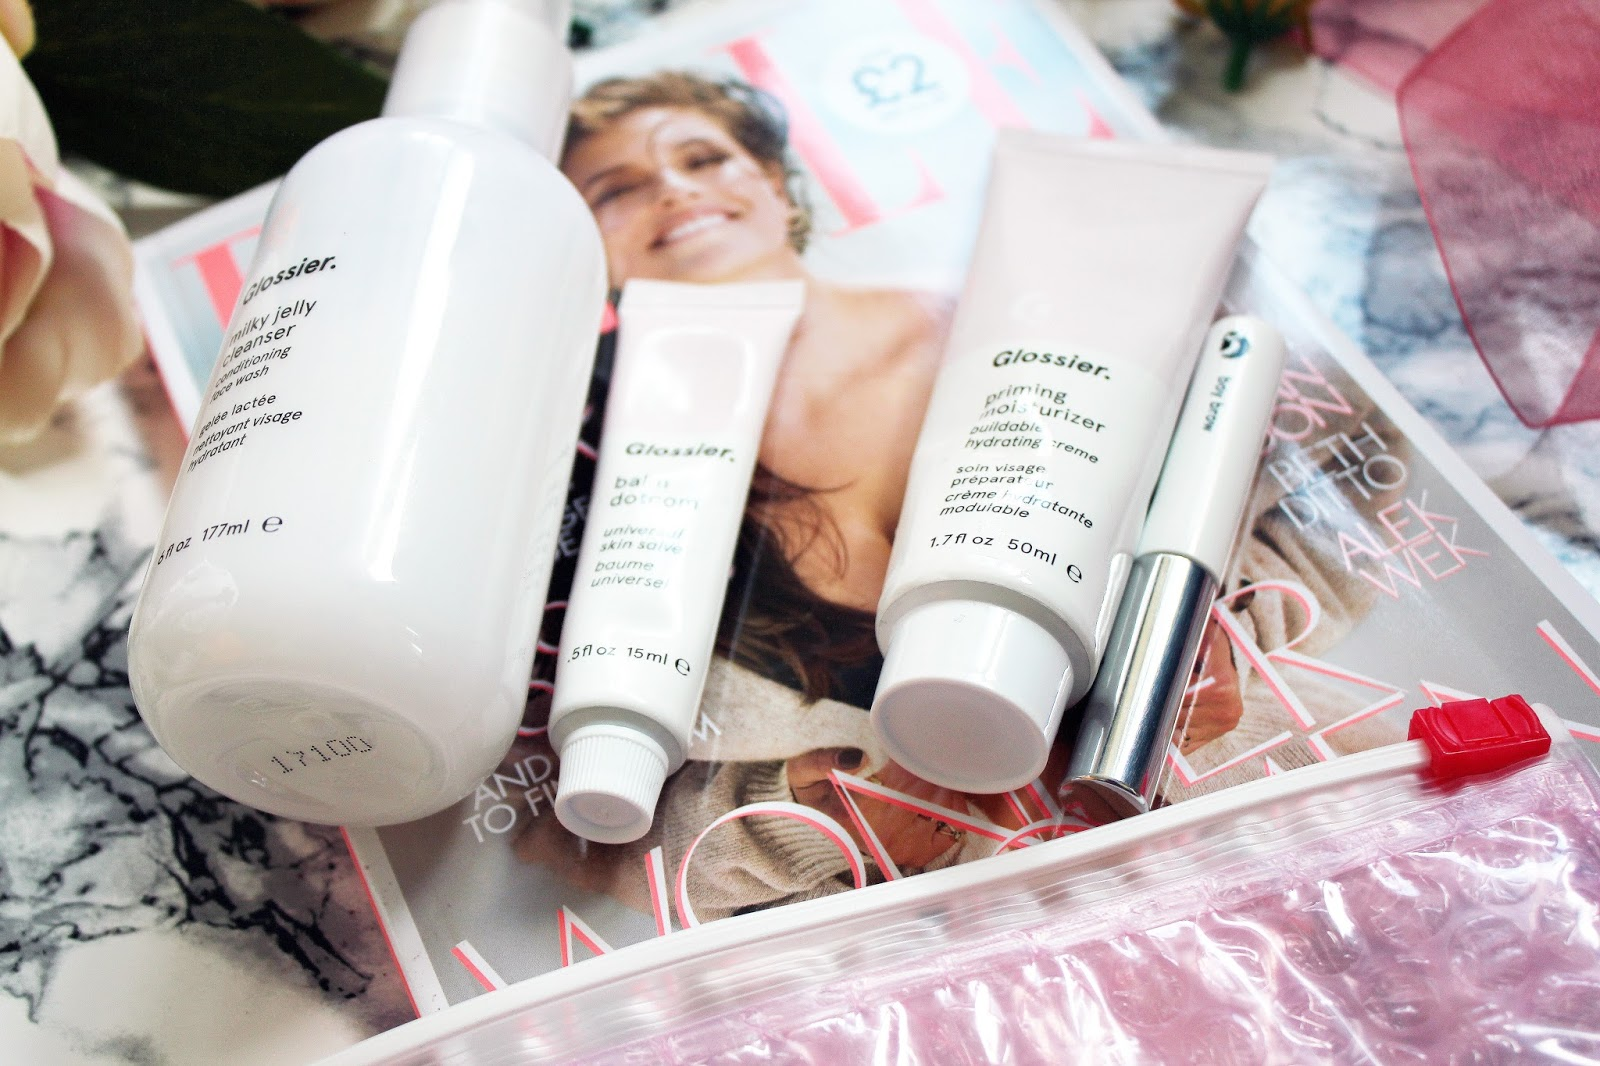 aa4c594a40d Well it took me approximately about 3 or 4 hours since Anna put up her  Glossier blog post till I placed an order (you can get 10% by using my code  btw!) ...